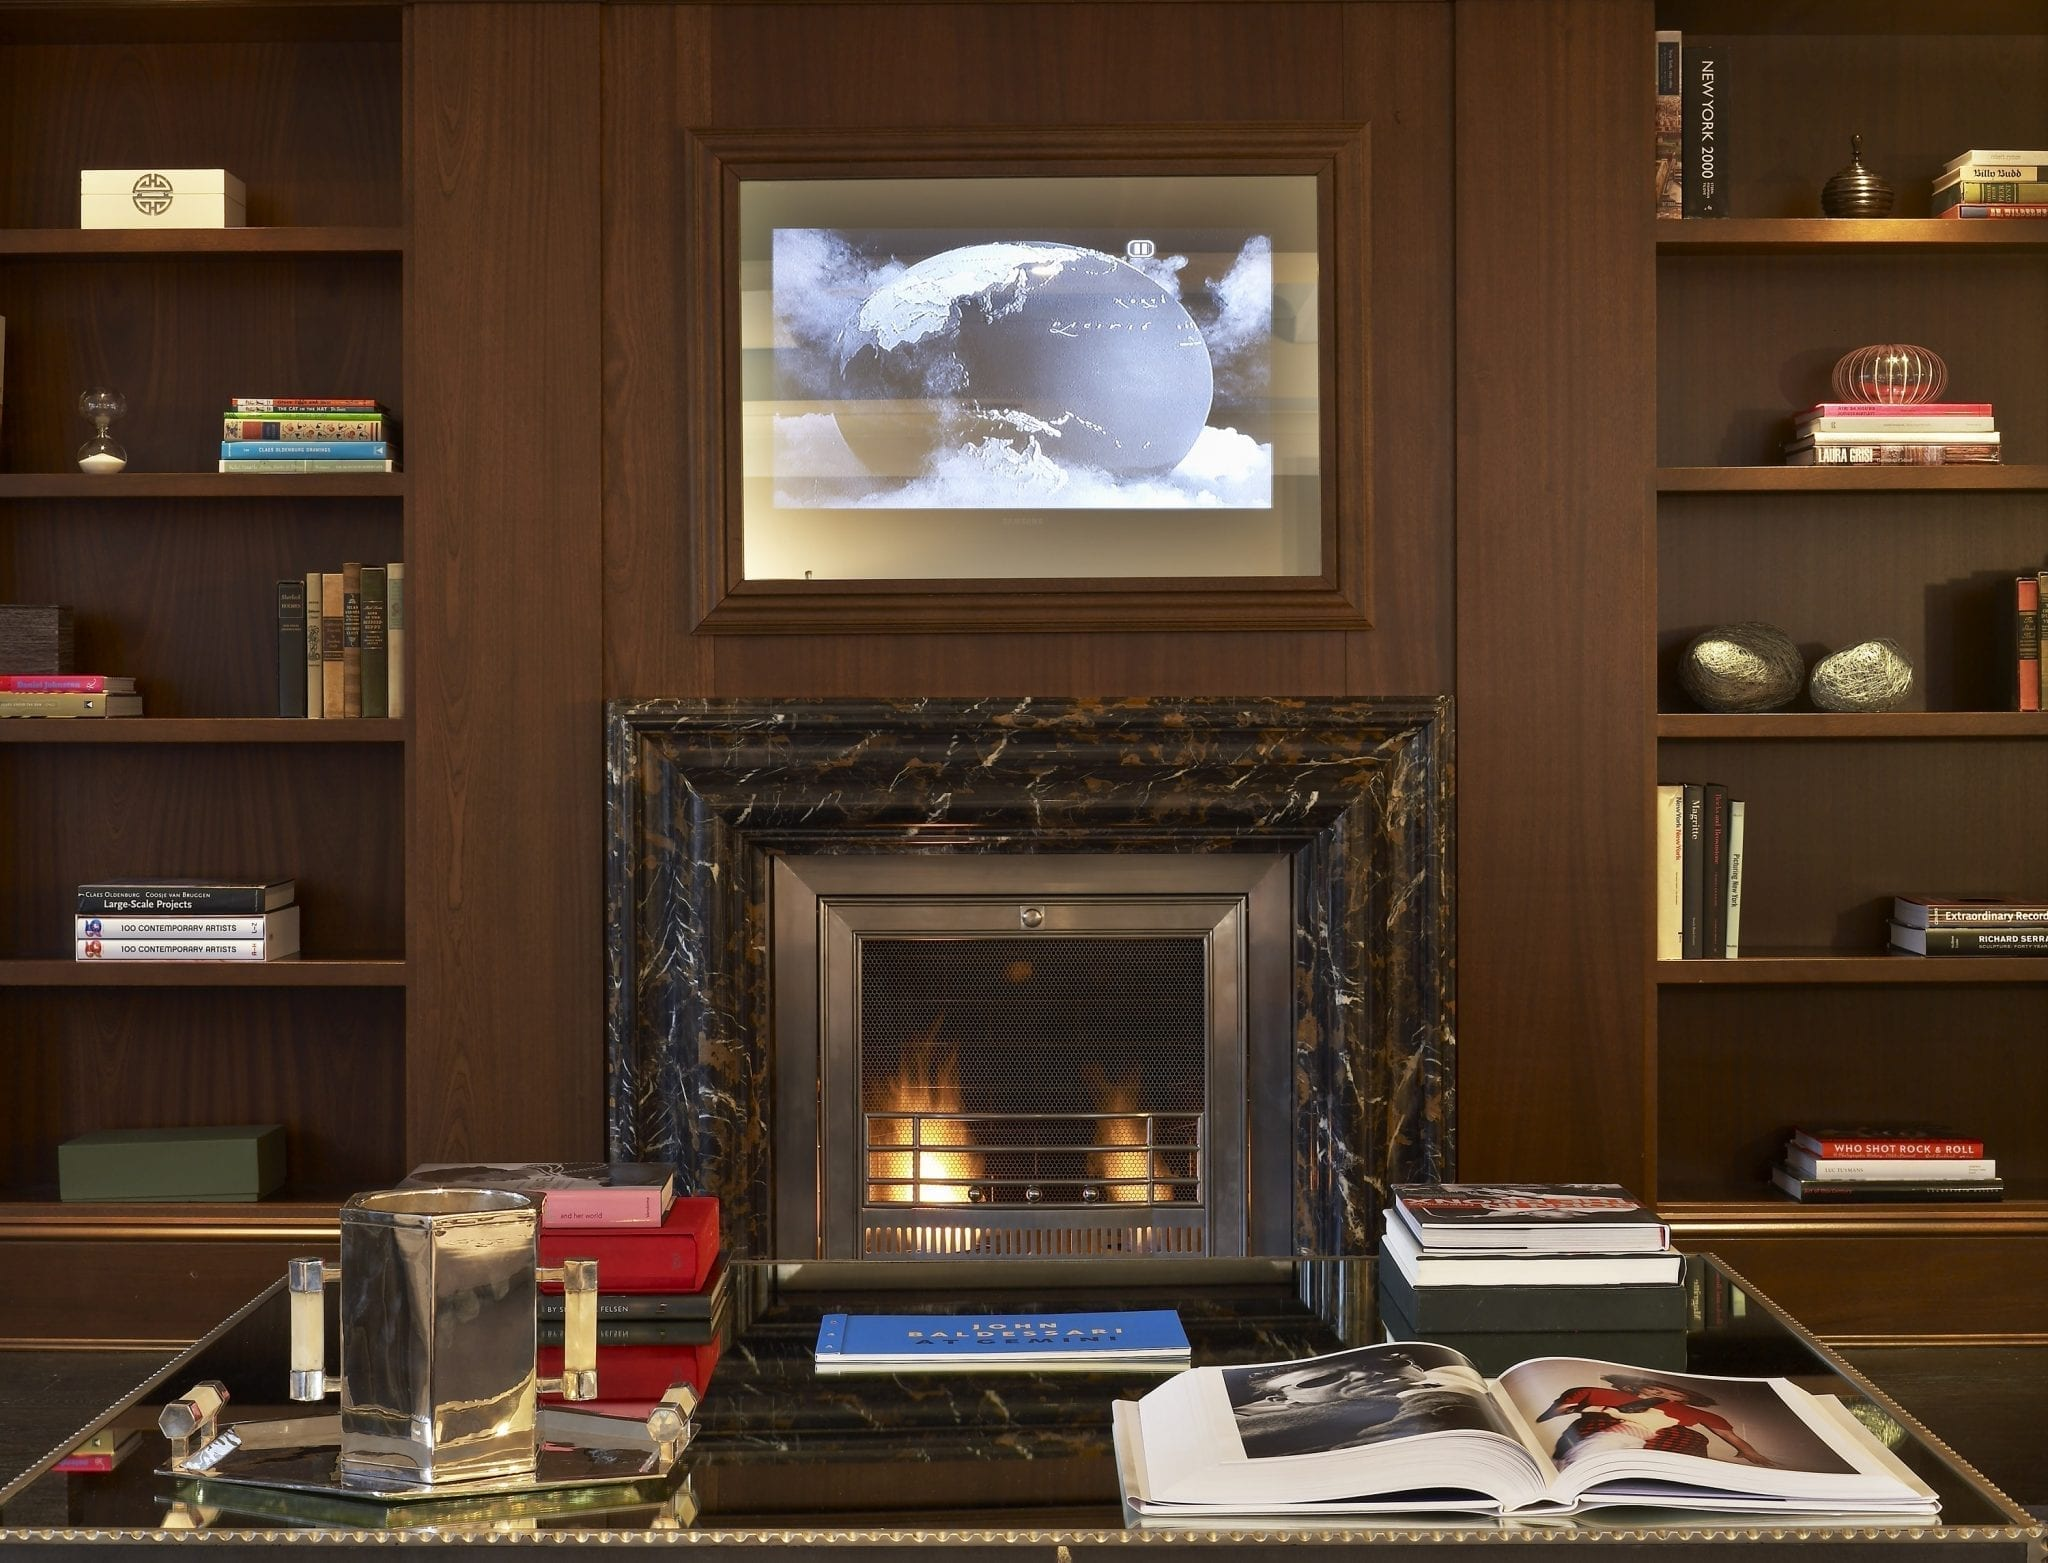 Close-up of the fireplace and flat screen television inside the sitting area of The Surrey Hotel's Presidential Suite. At the sides are book cases set into the wall paneling, with a lit fireplace.